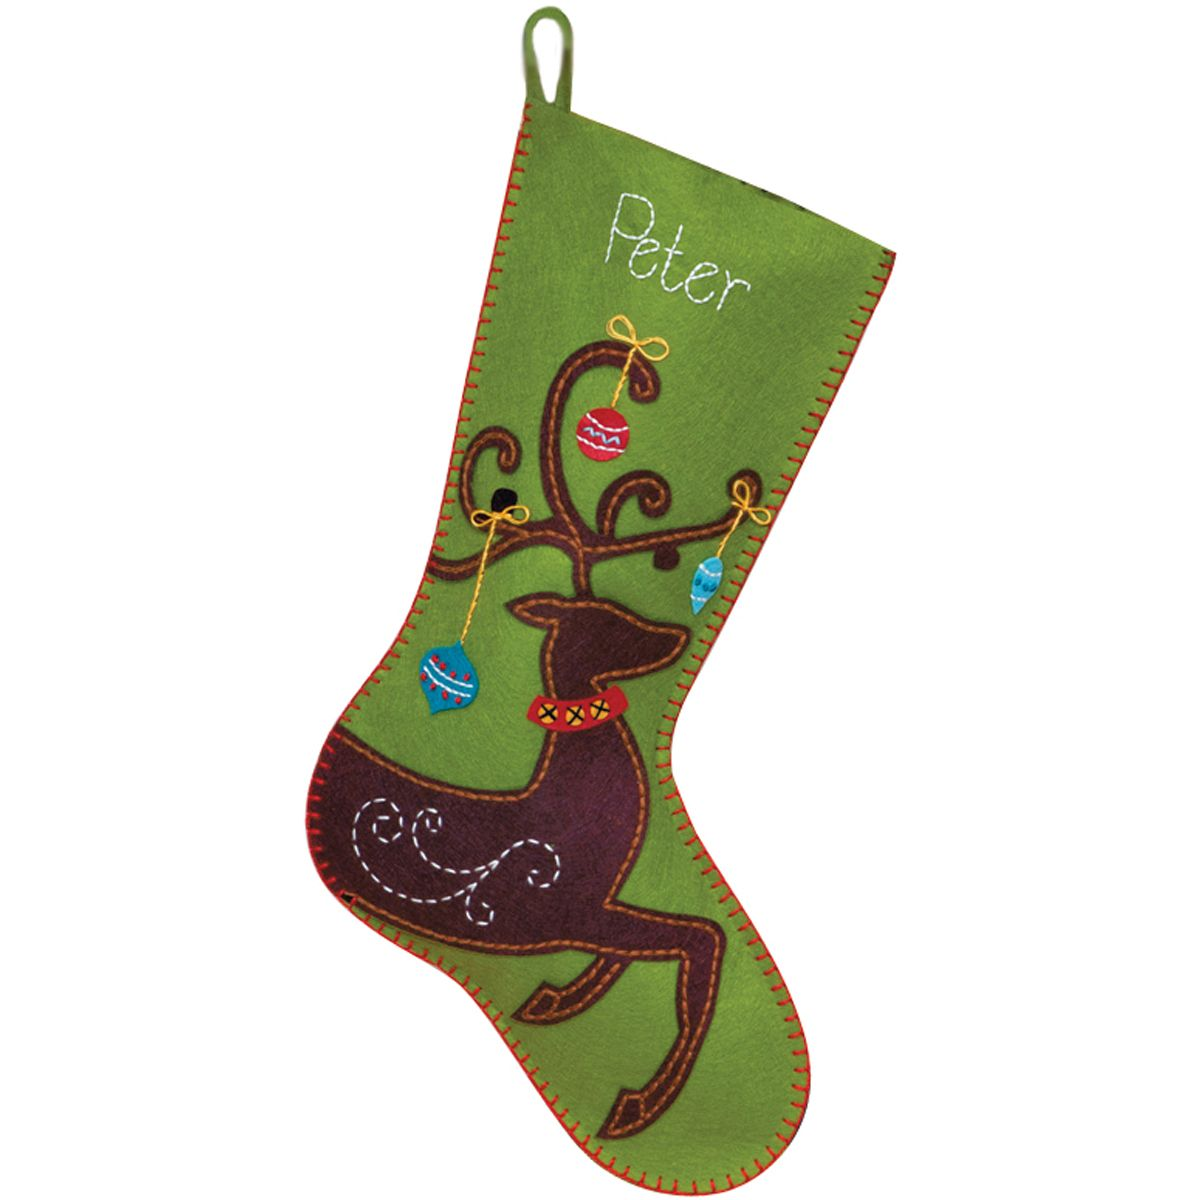 Dimensionsfelt applique kit stocking classic designs and high